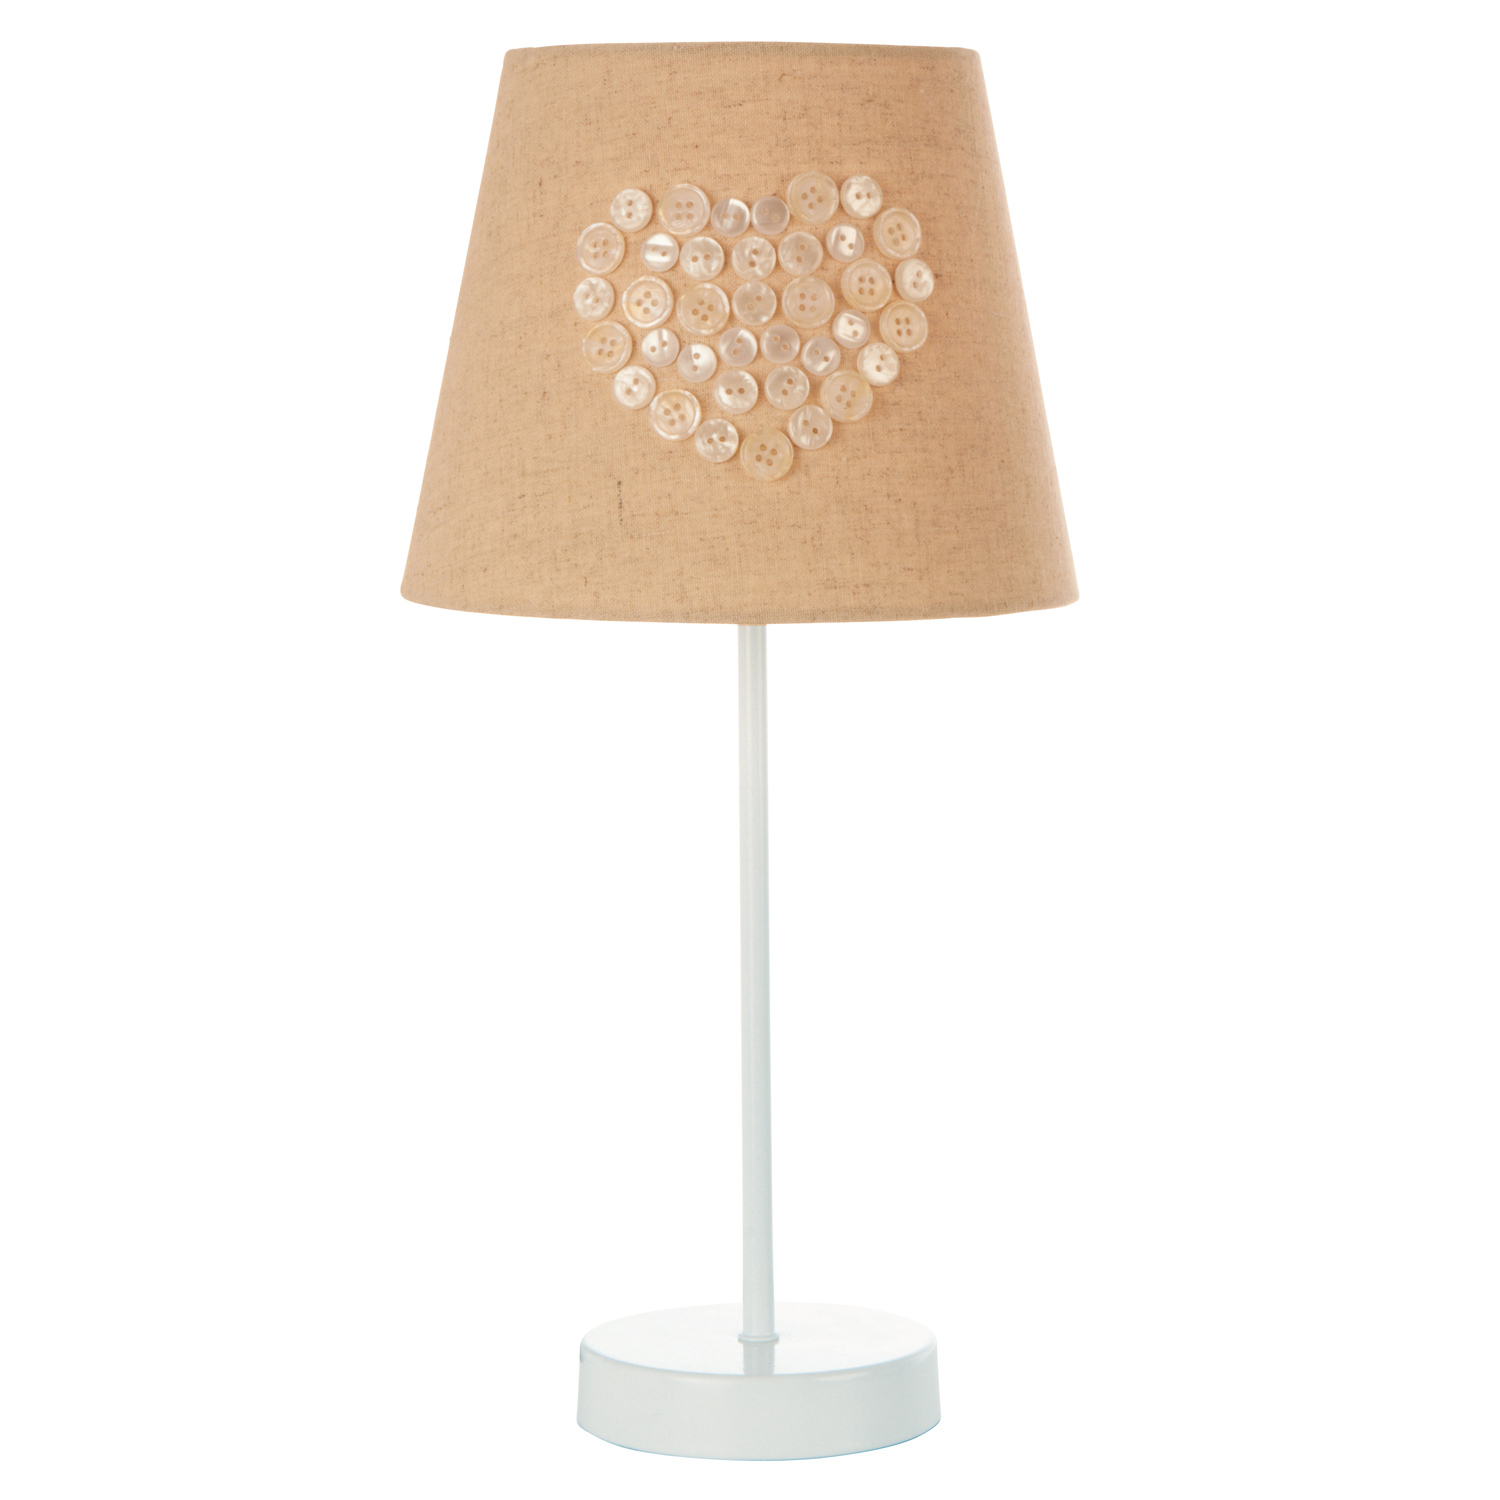 crucial role played by shabby chic table lamps warisan. Black Bedroom Furniture Sets. Home Design Ideas